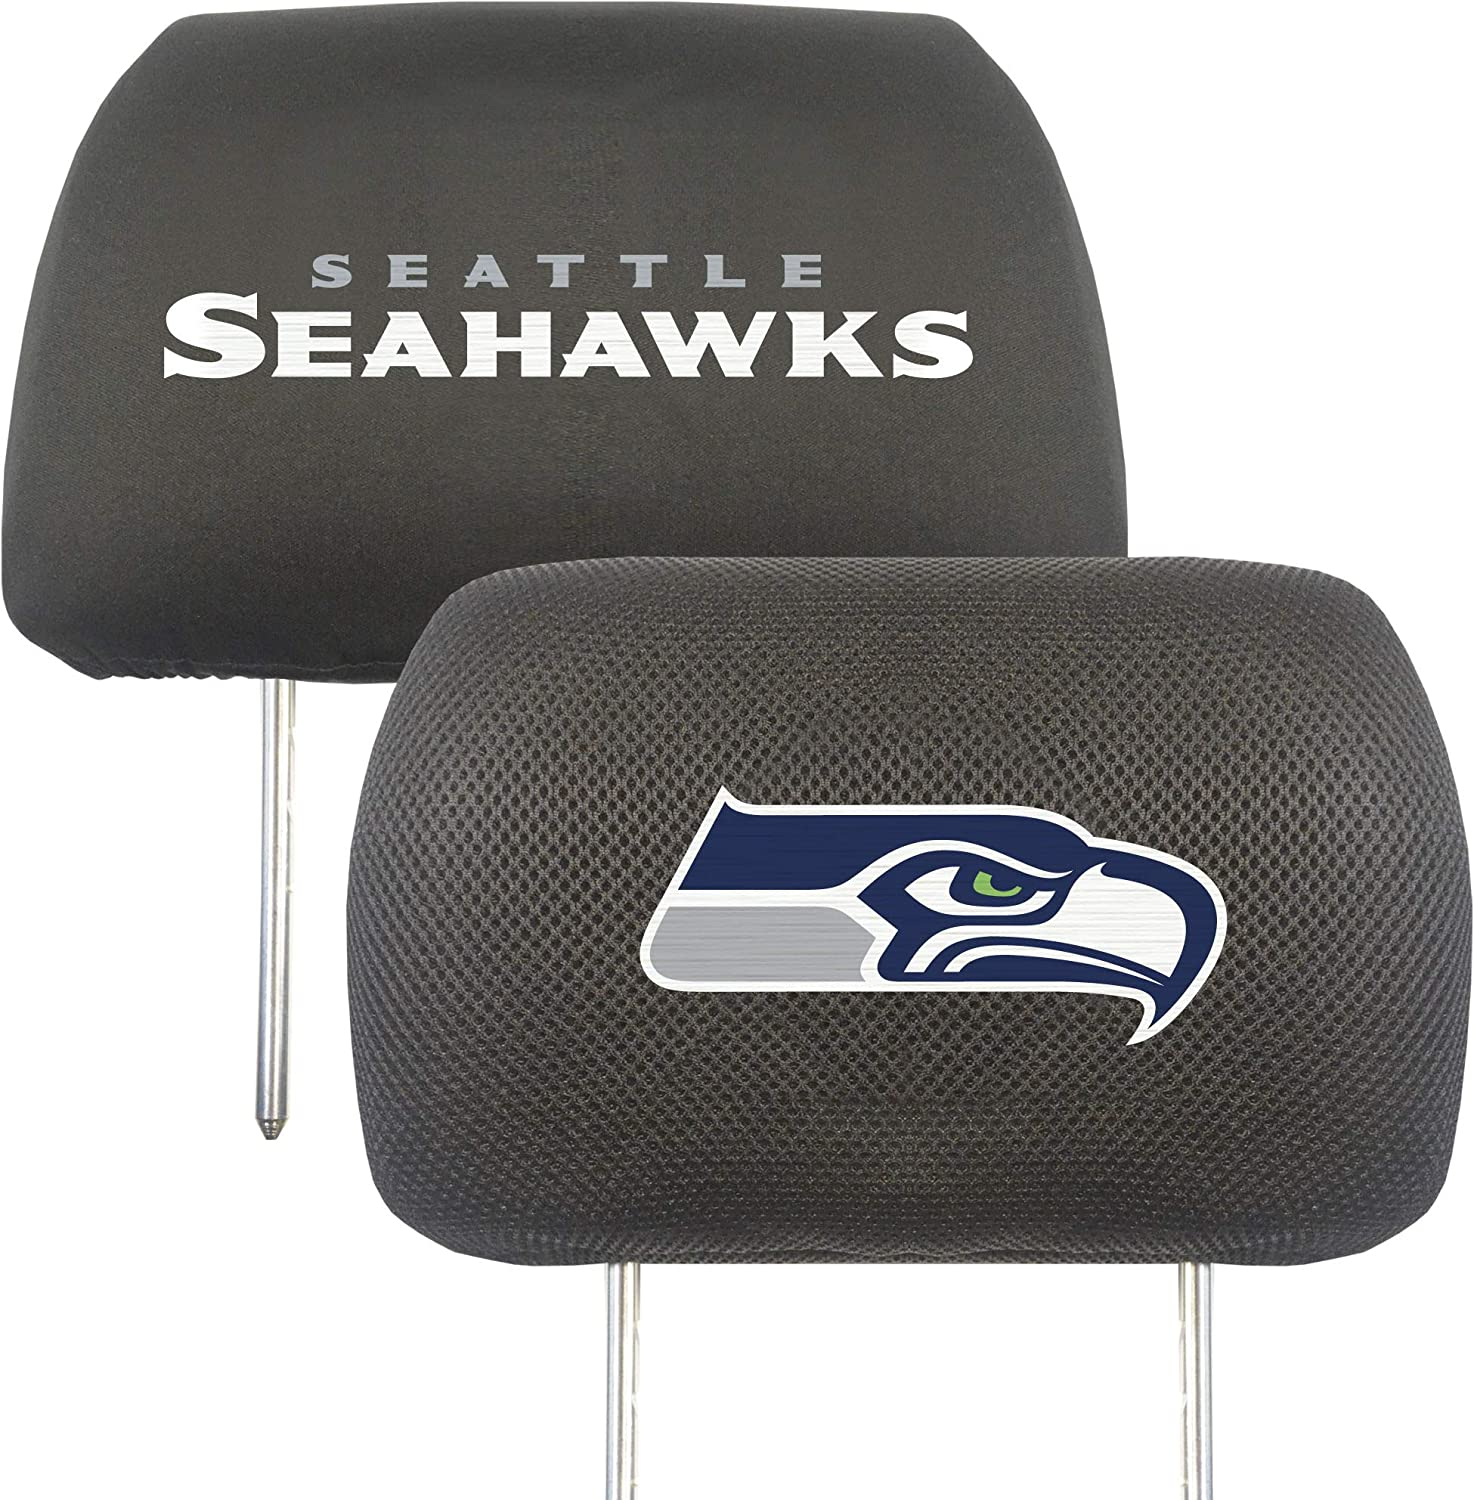 FANMATS NFL Seattle Seahawks Auto Max 61% OFF 5 ☆ popular Headrest Covers Team Colors